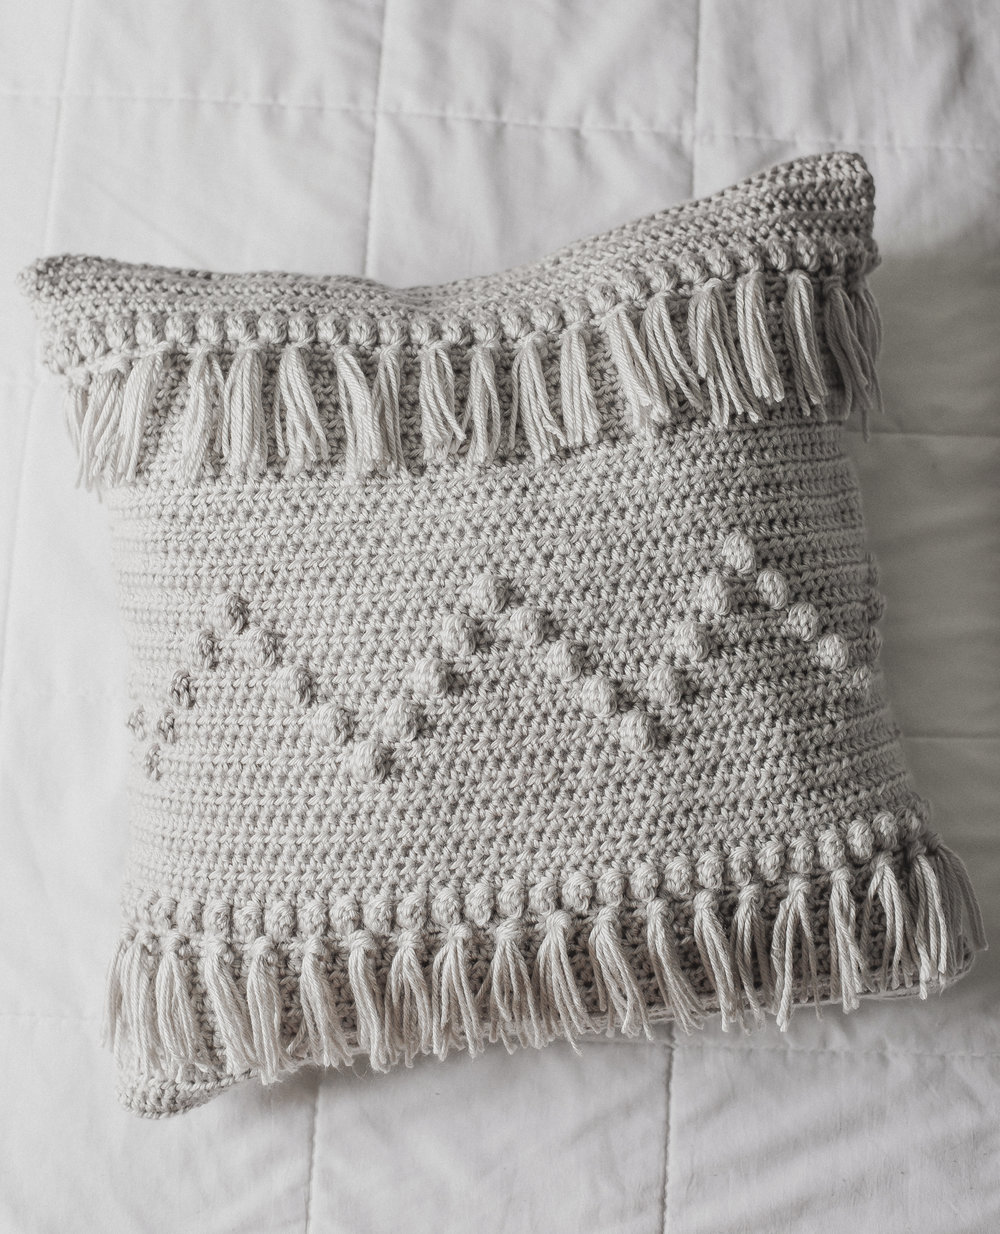 Free Crochet Pattern for Fringe Crochet Pillow - Megmade with Love